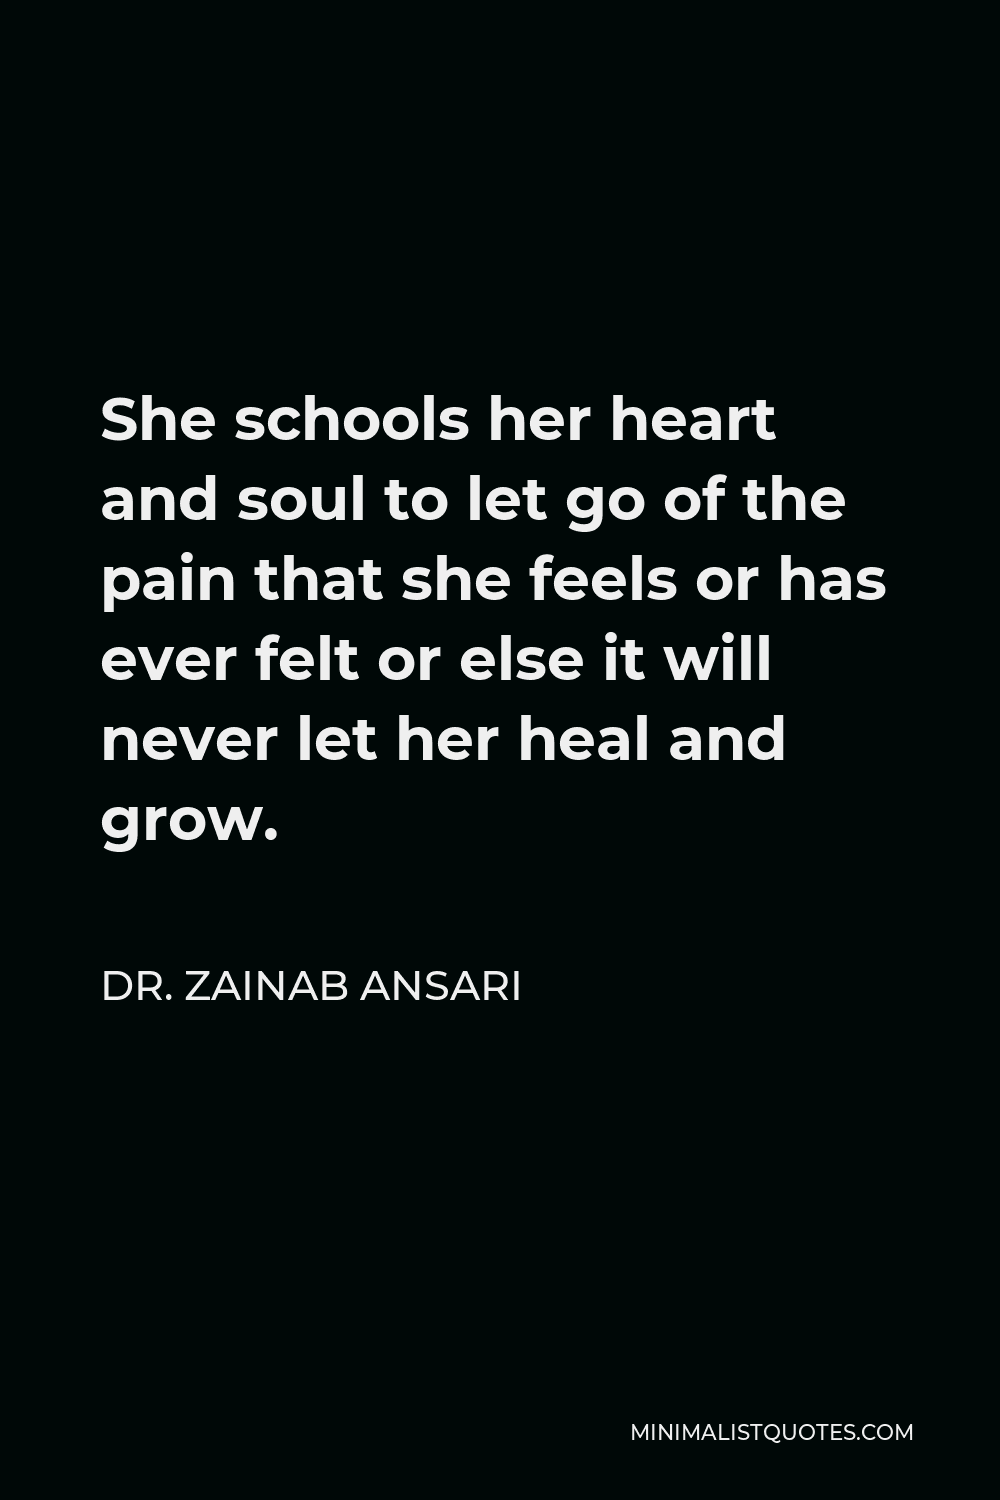 Dr. Zainab Ansari Quote - She schools her heart and soul to let go of the pain that she feels or has ever felt or else it will never let her heal and grow.